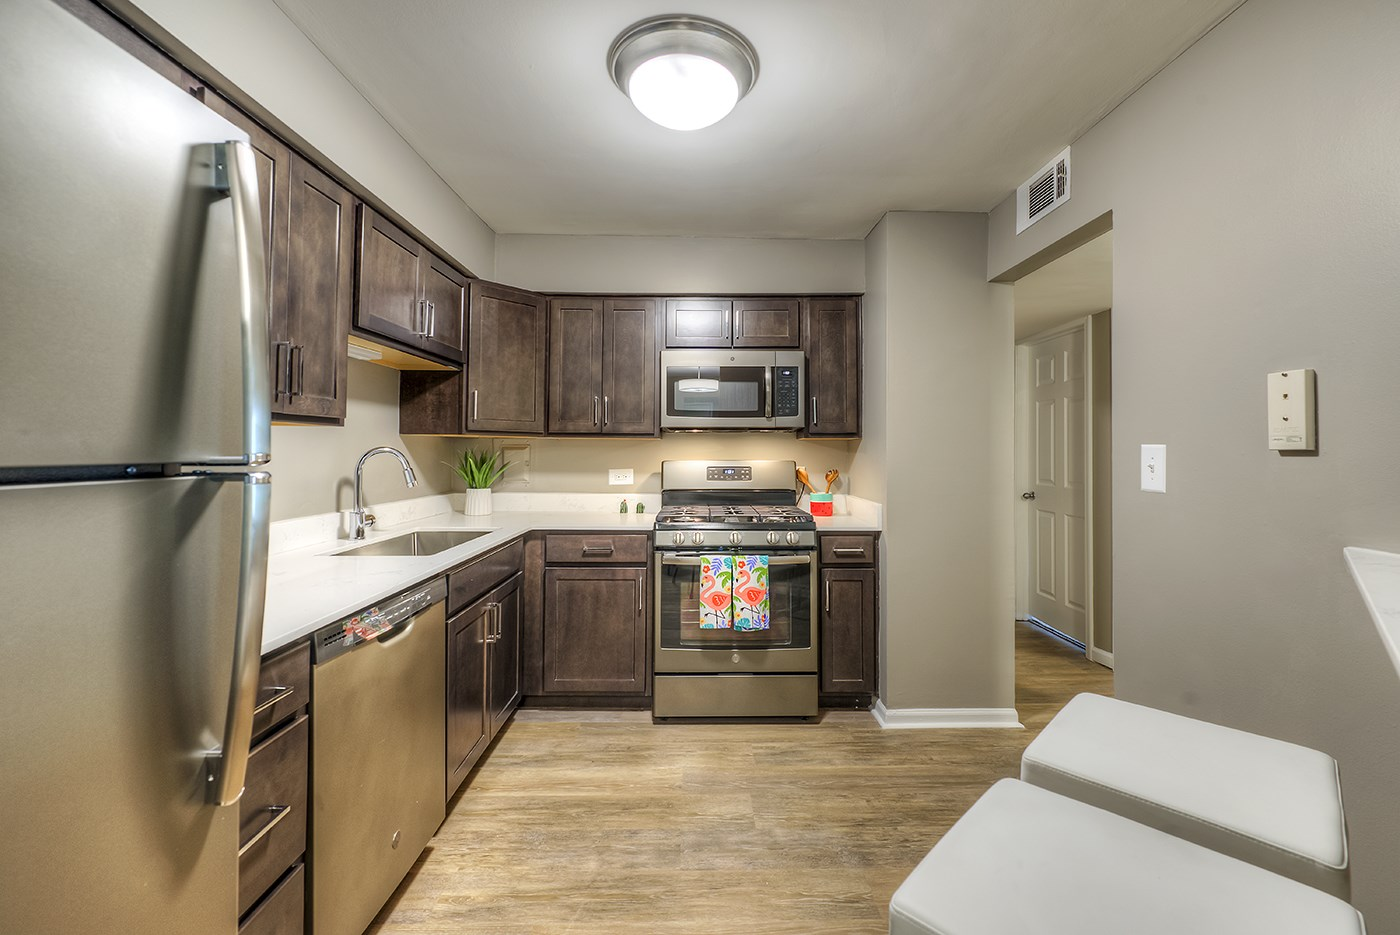 Fully Equipped Kitchen with Modern Appliances, at Carol Stream CrossILg, Carol Stream, IL 60188